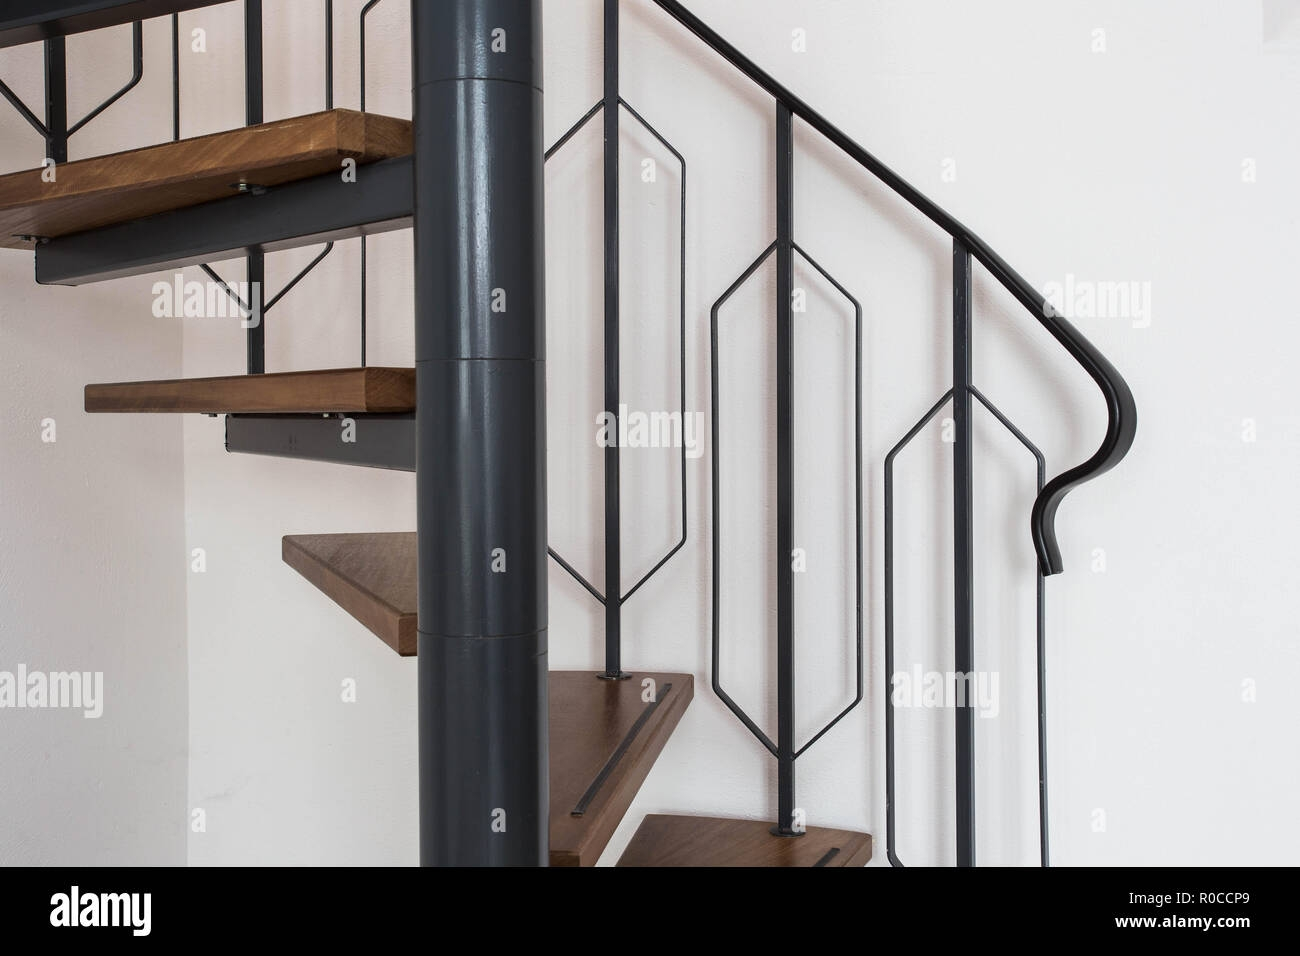 Spiral Staircase High Resolution Stock Photography And Images Alamy | External Spiral Staircase For Sale | Stair Treads | Staircase Ideas | Steel Spiral | Metal Spiral | Staircase Railings